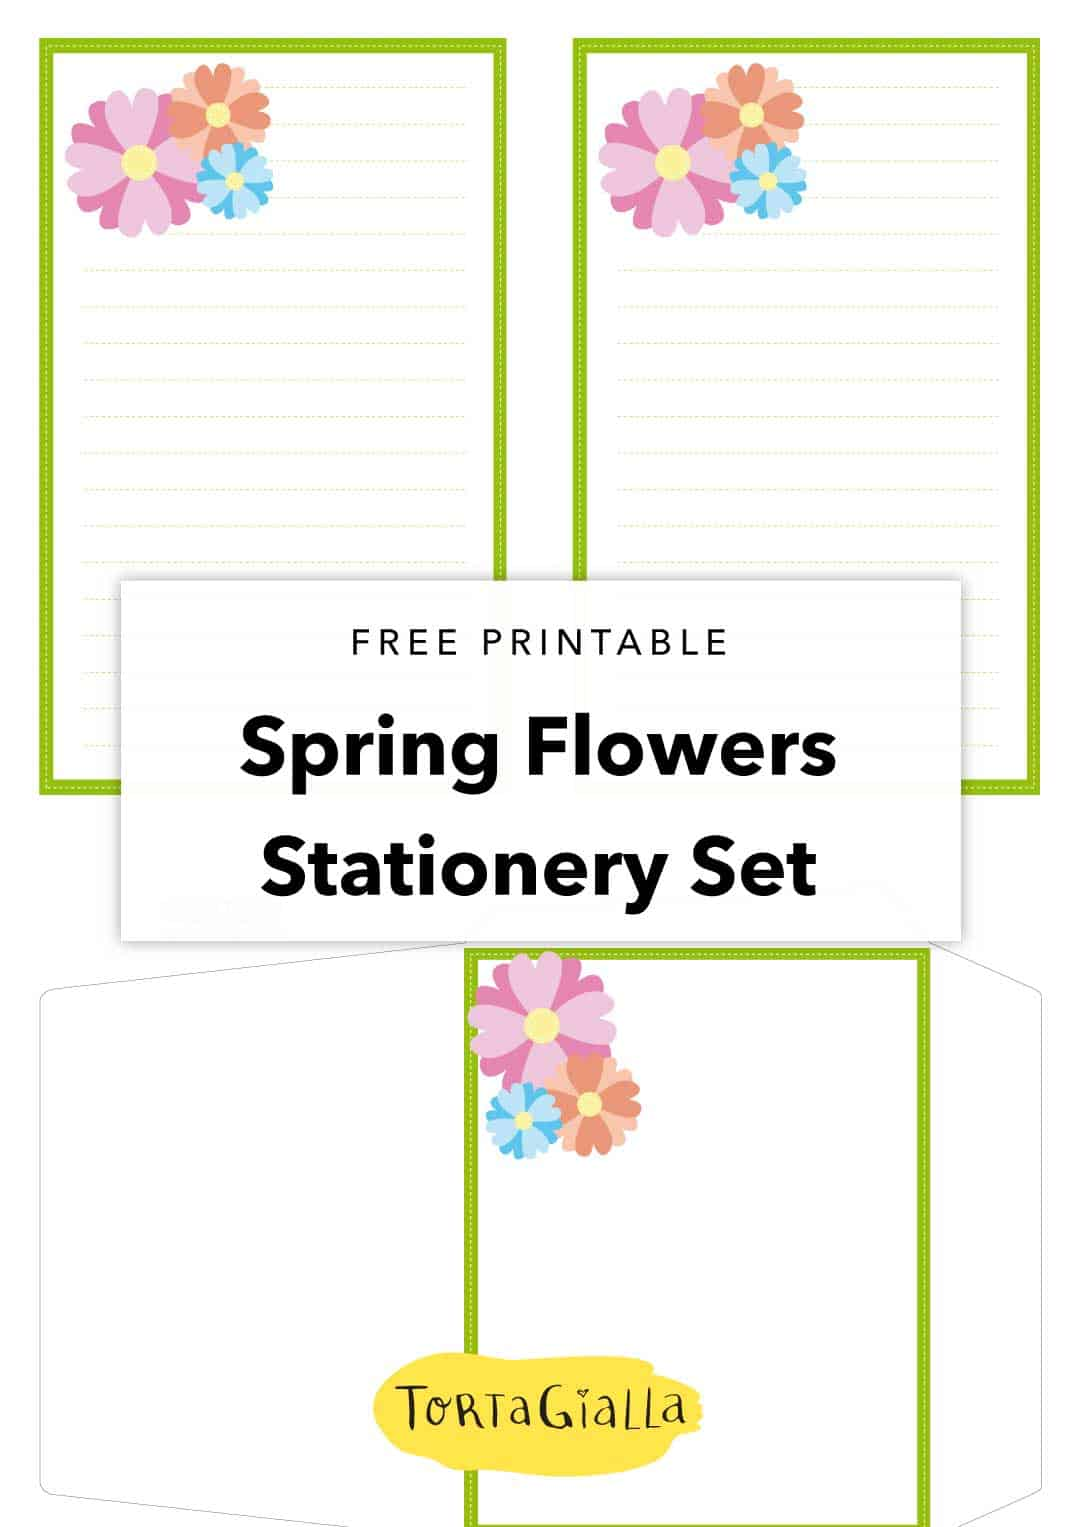 Spring Flowers Stationery Set